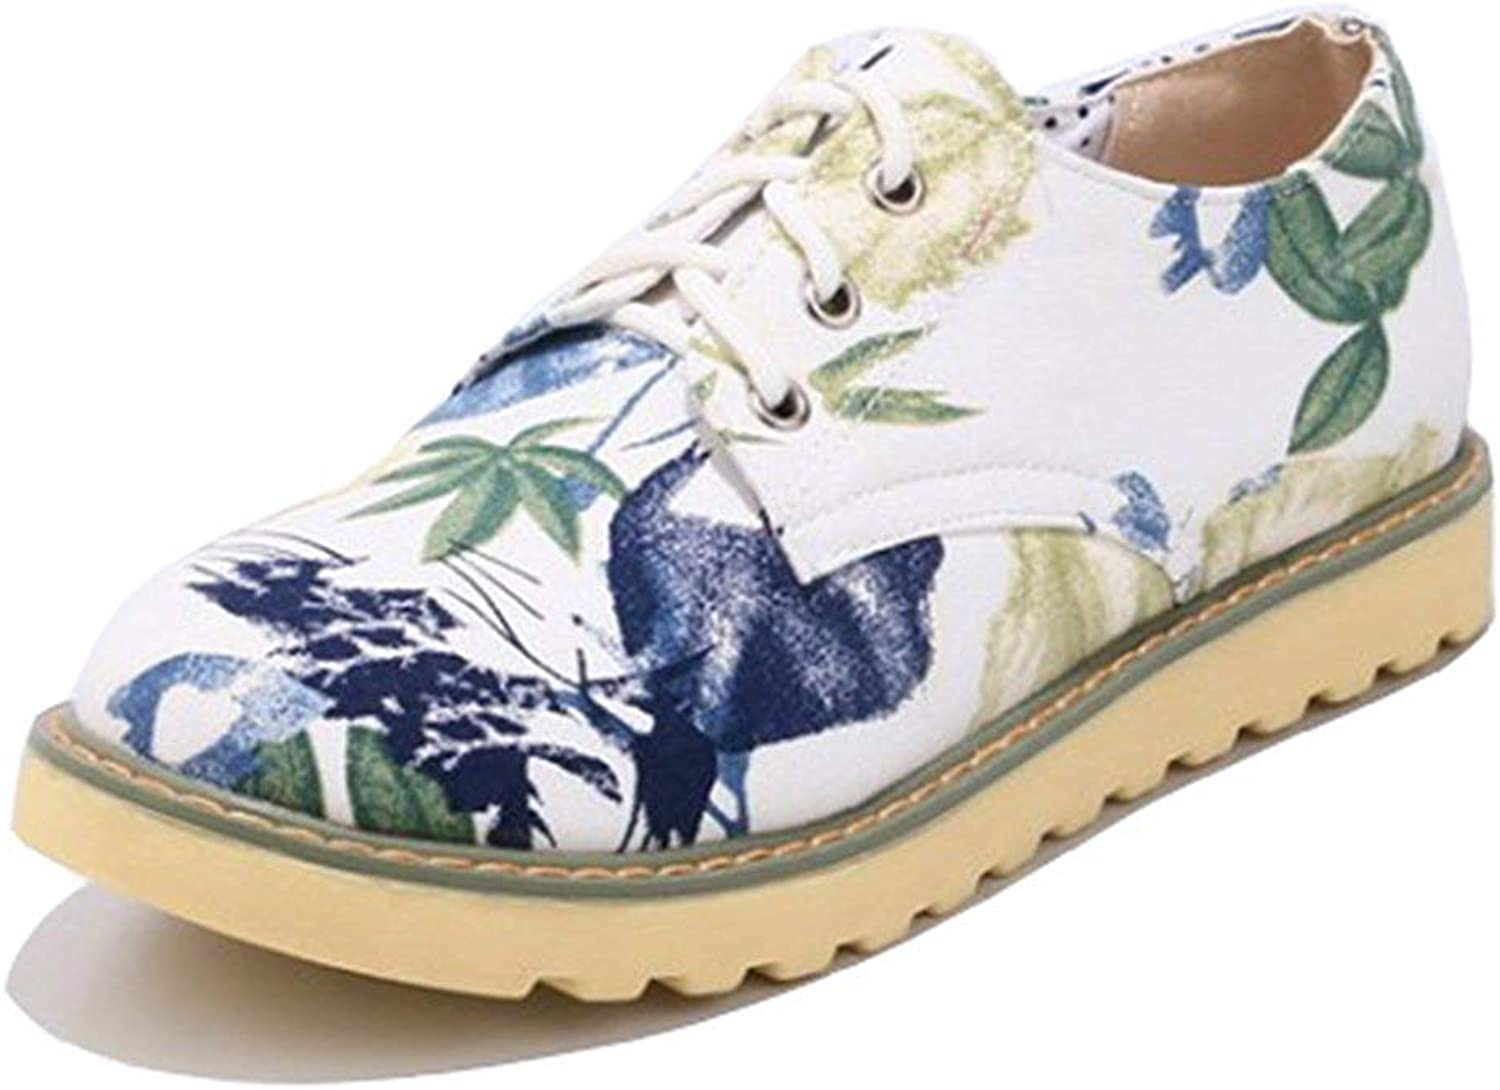 Unm Women's Comfort Floral Print Round Toe Driving Cars Lace Up Flats shoes